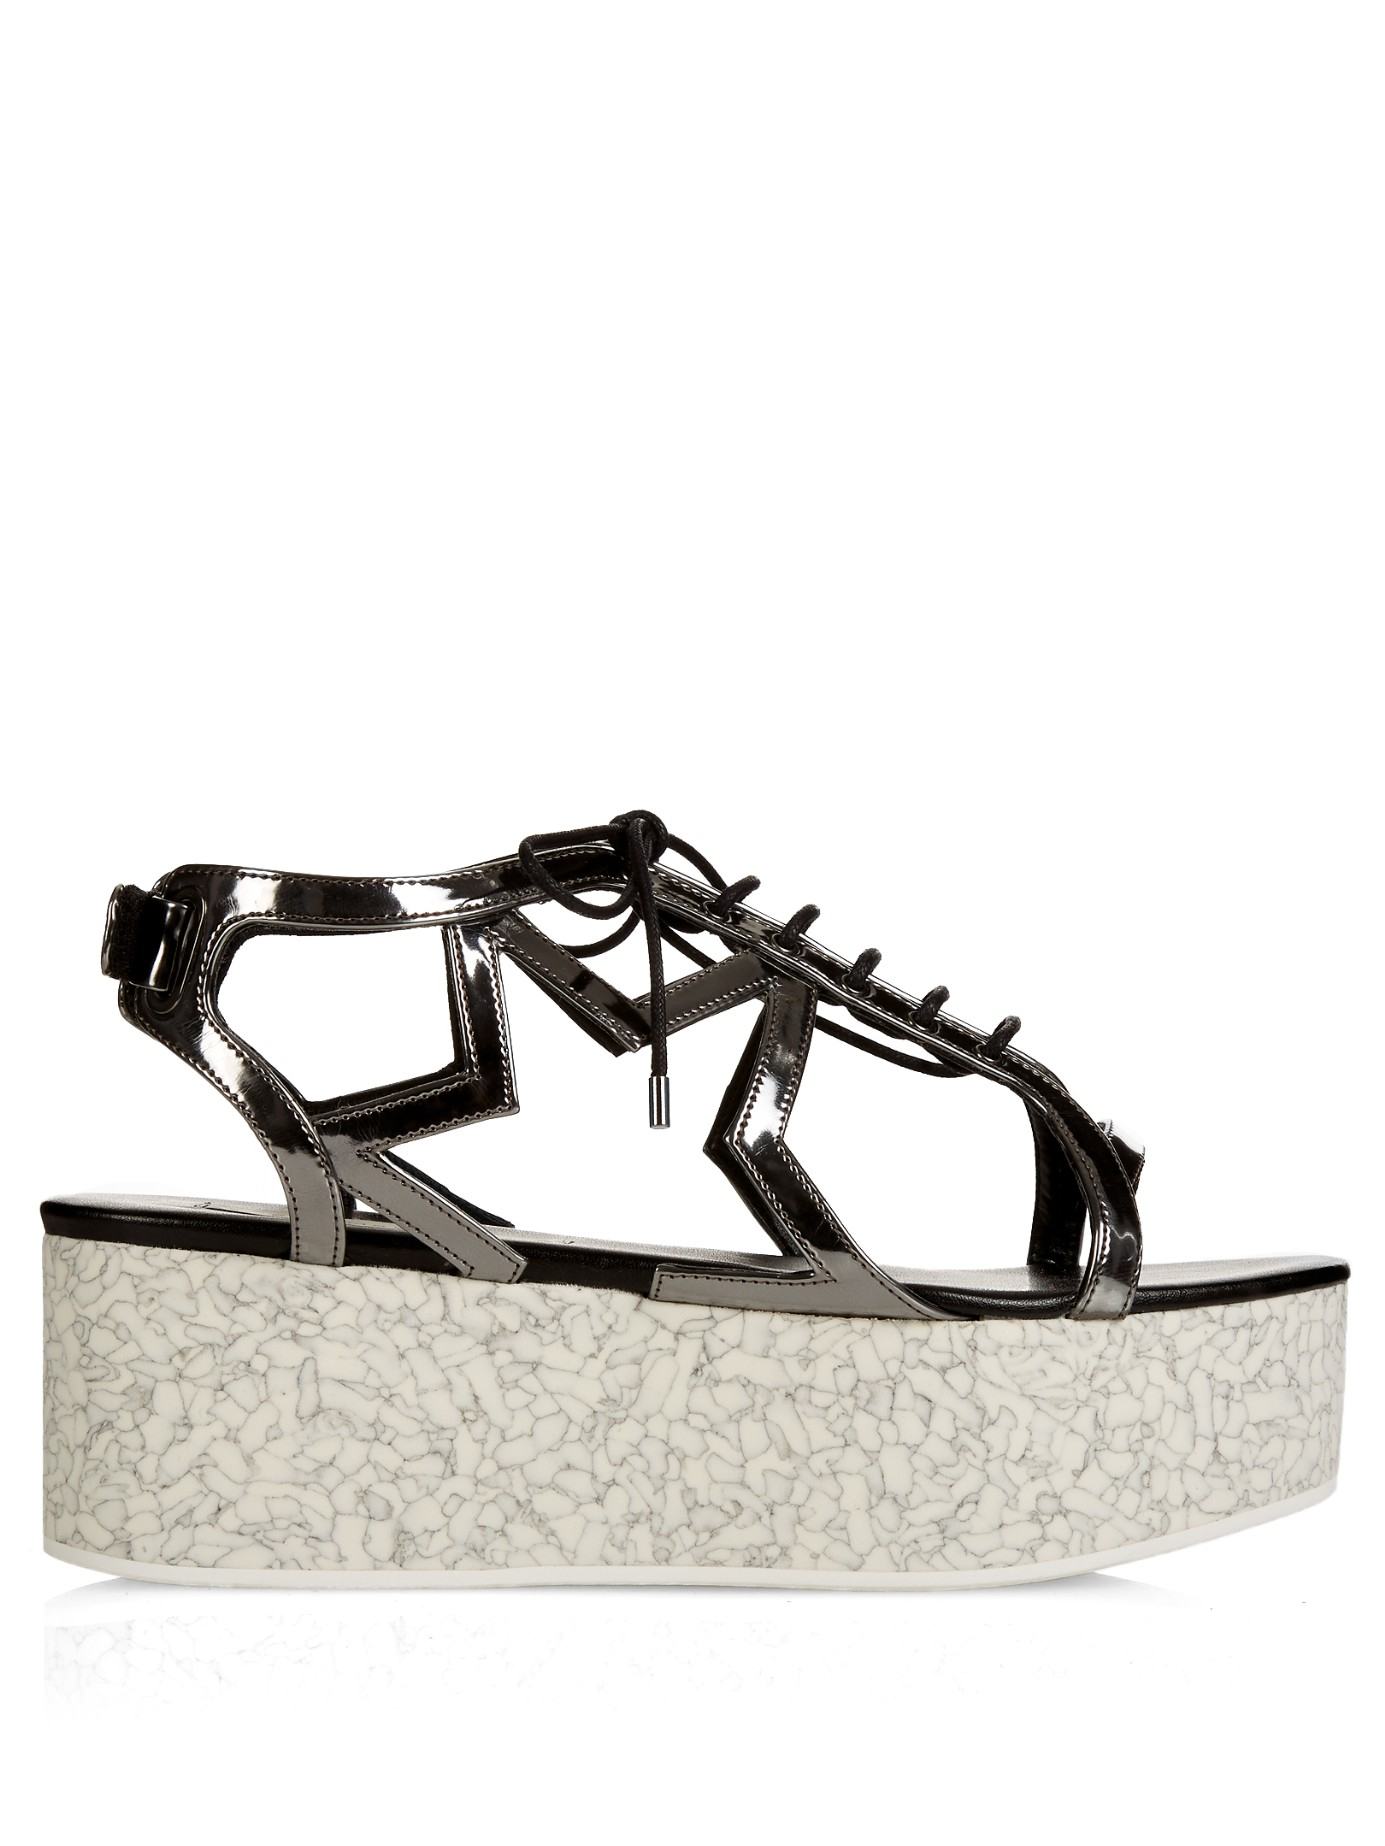 c2248394084a Lyst - Stella McCartney Lucy Star Metallic Faux Leather Platform ...